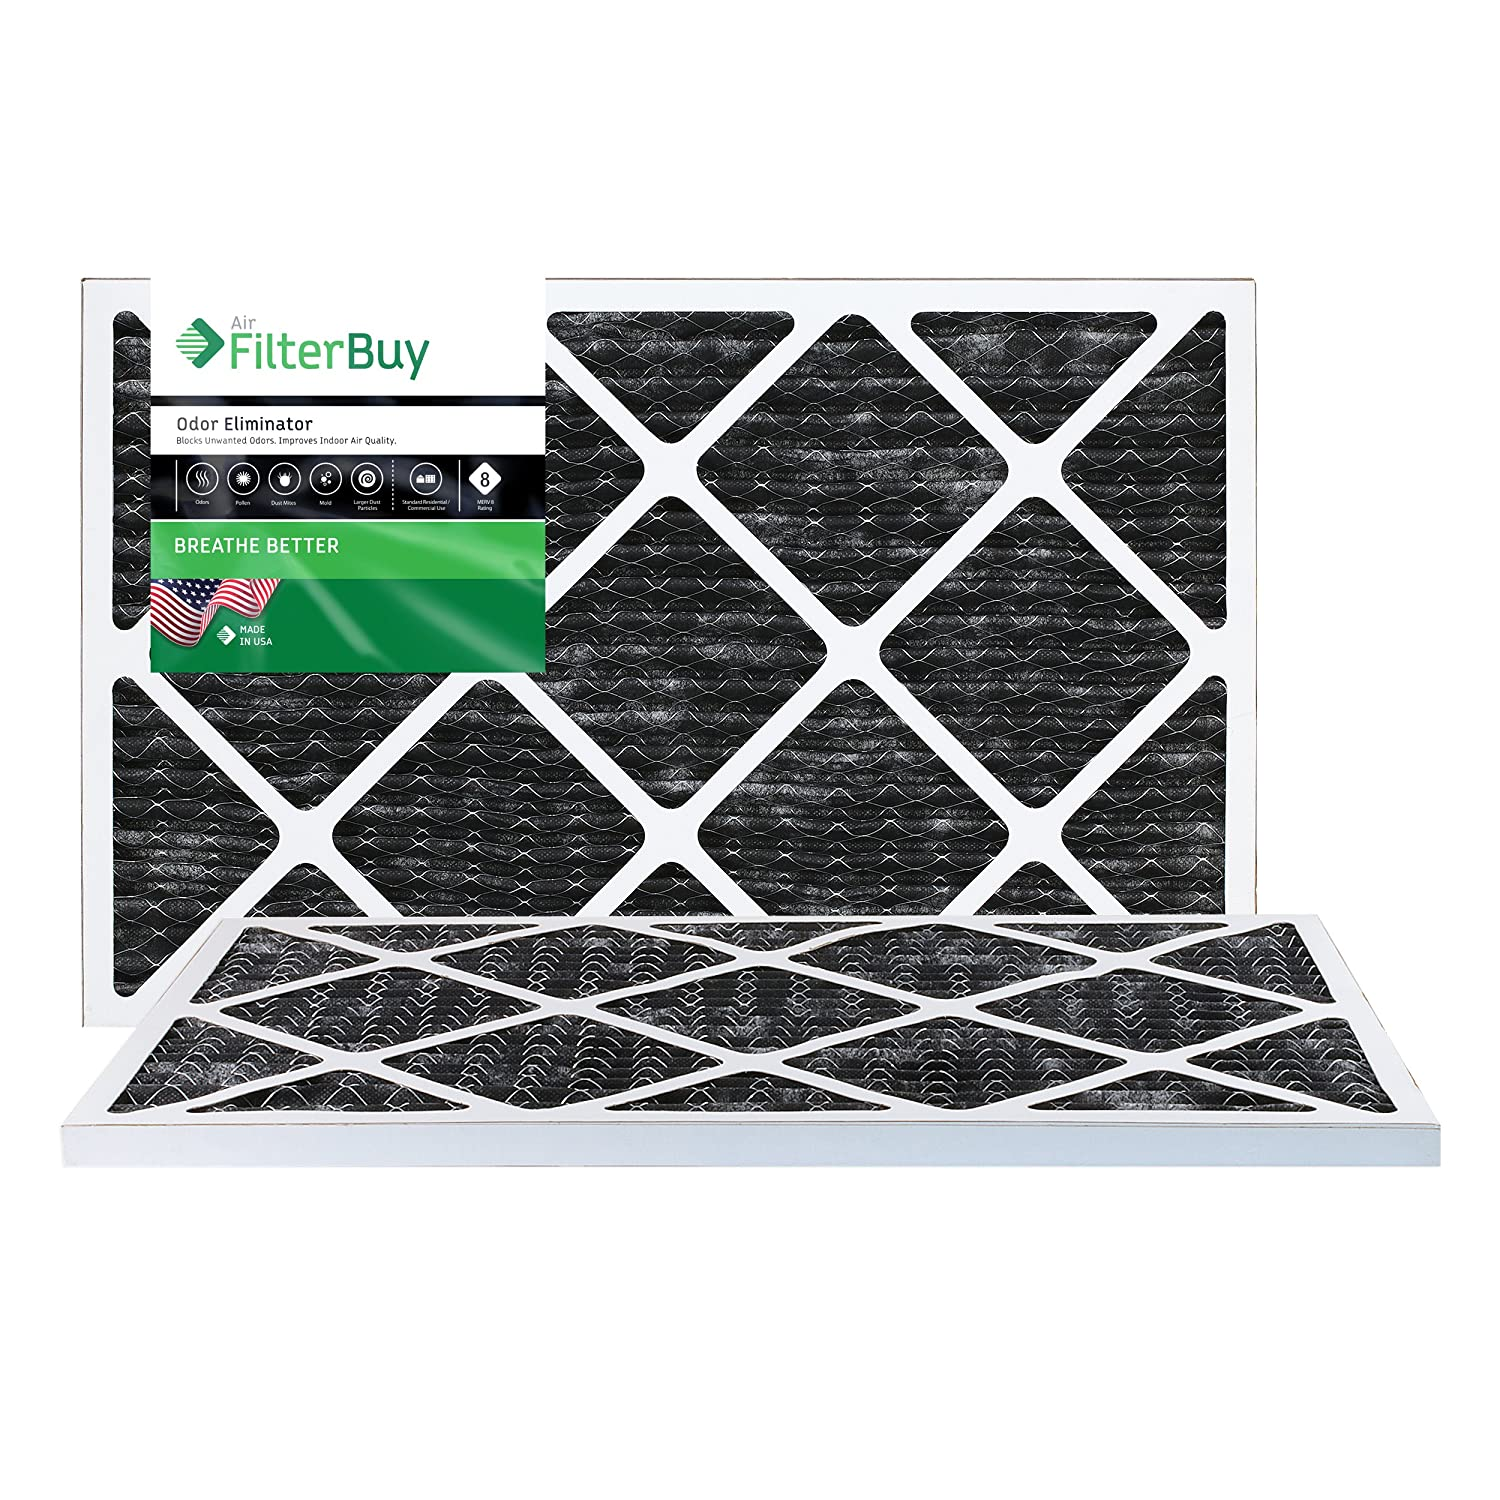 FilterBuy Allergen Odor Eliminator 12x24x1 MERV 8 Pleated AC Furnace Air Filter with Activated Carbon - Pack of 2-12x24x1